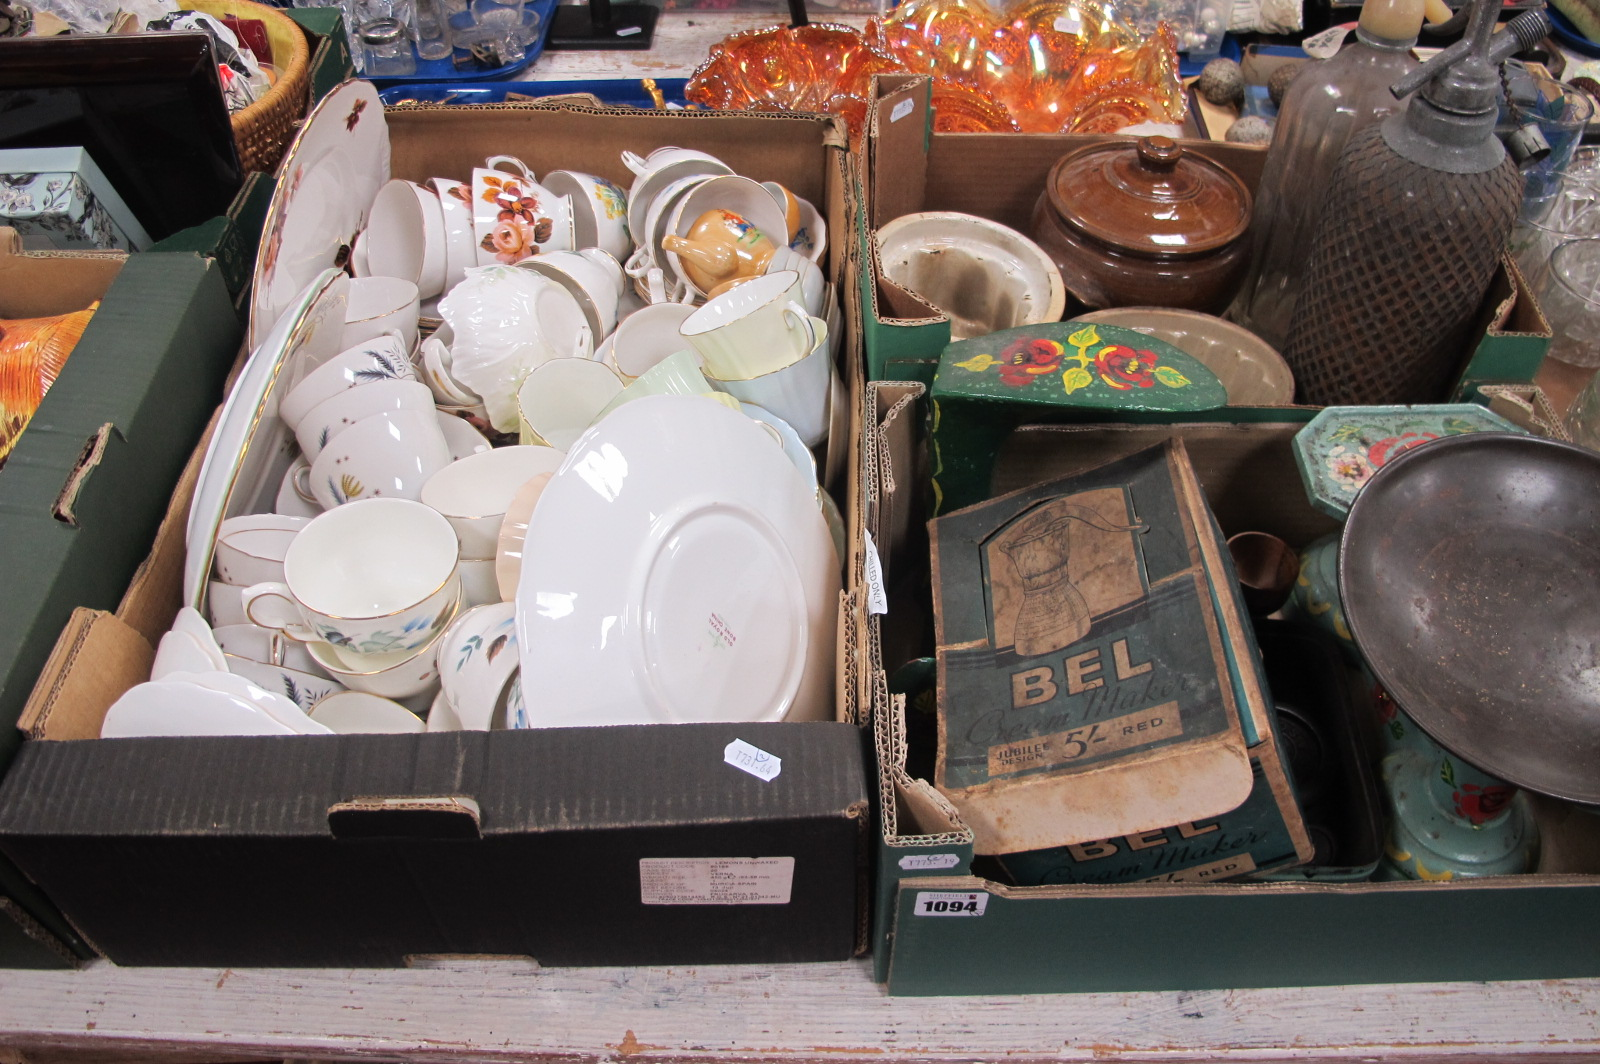 Two Soda Syphons, Bel Cream Maker, scales, weights, jelly moulds, etc:- Two Boxes